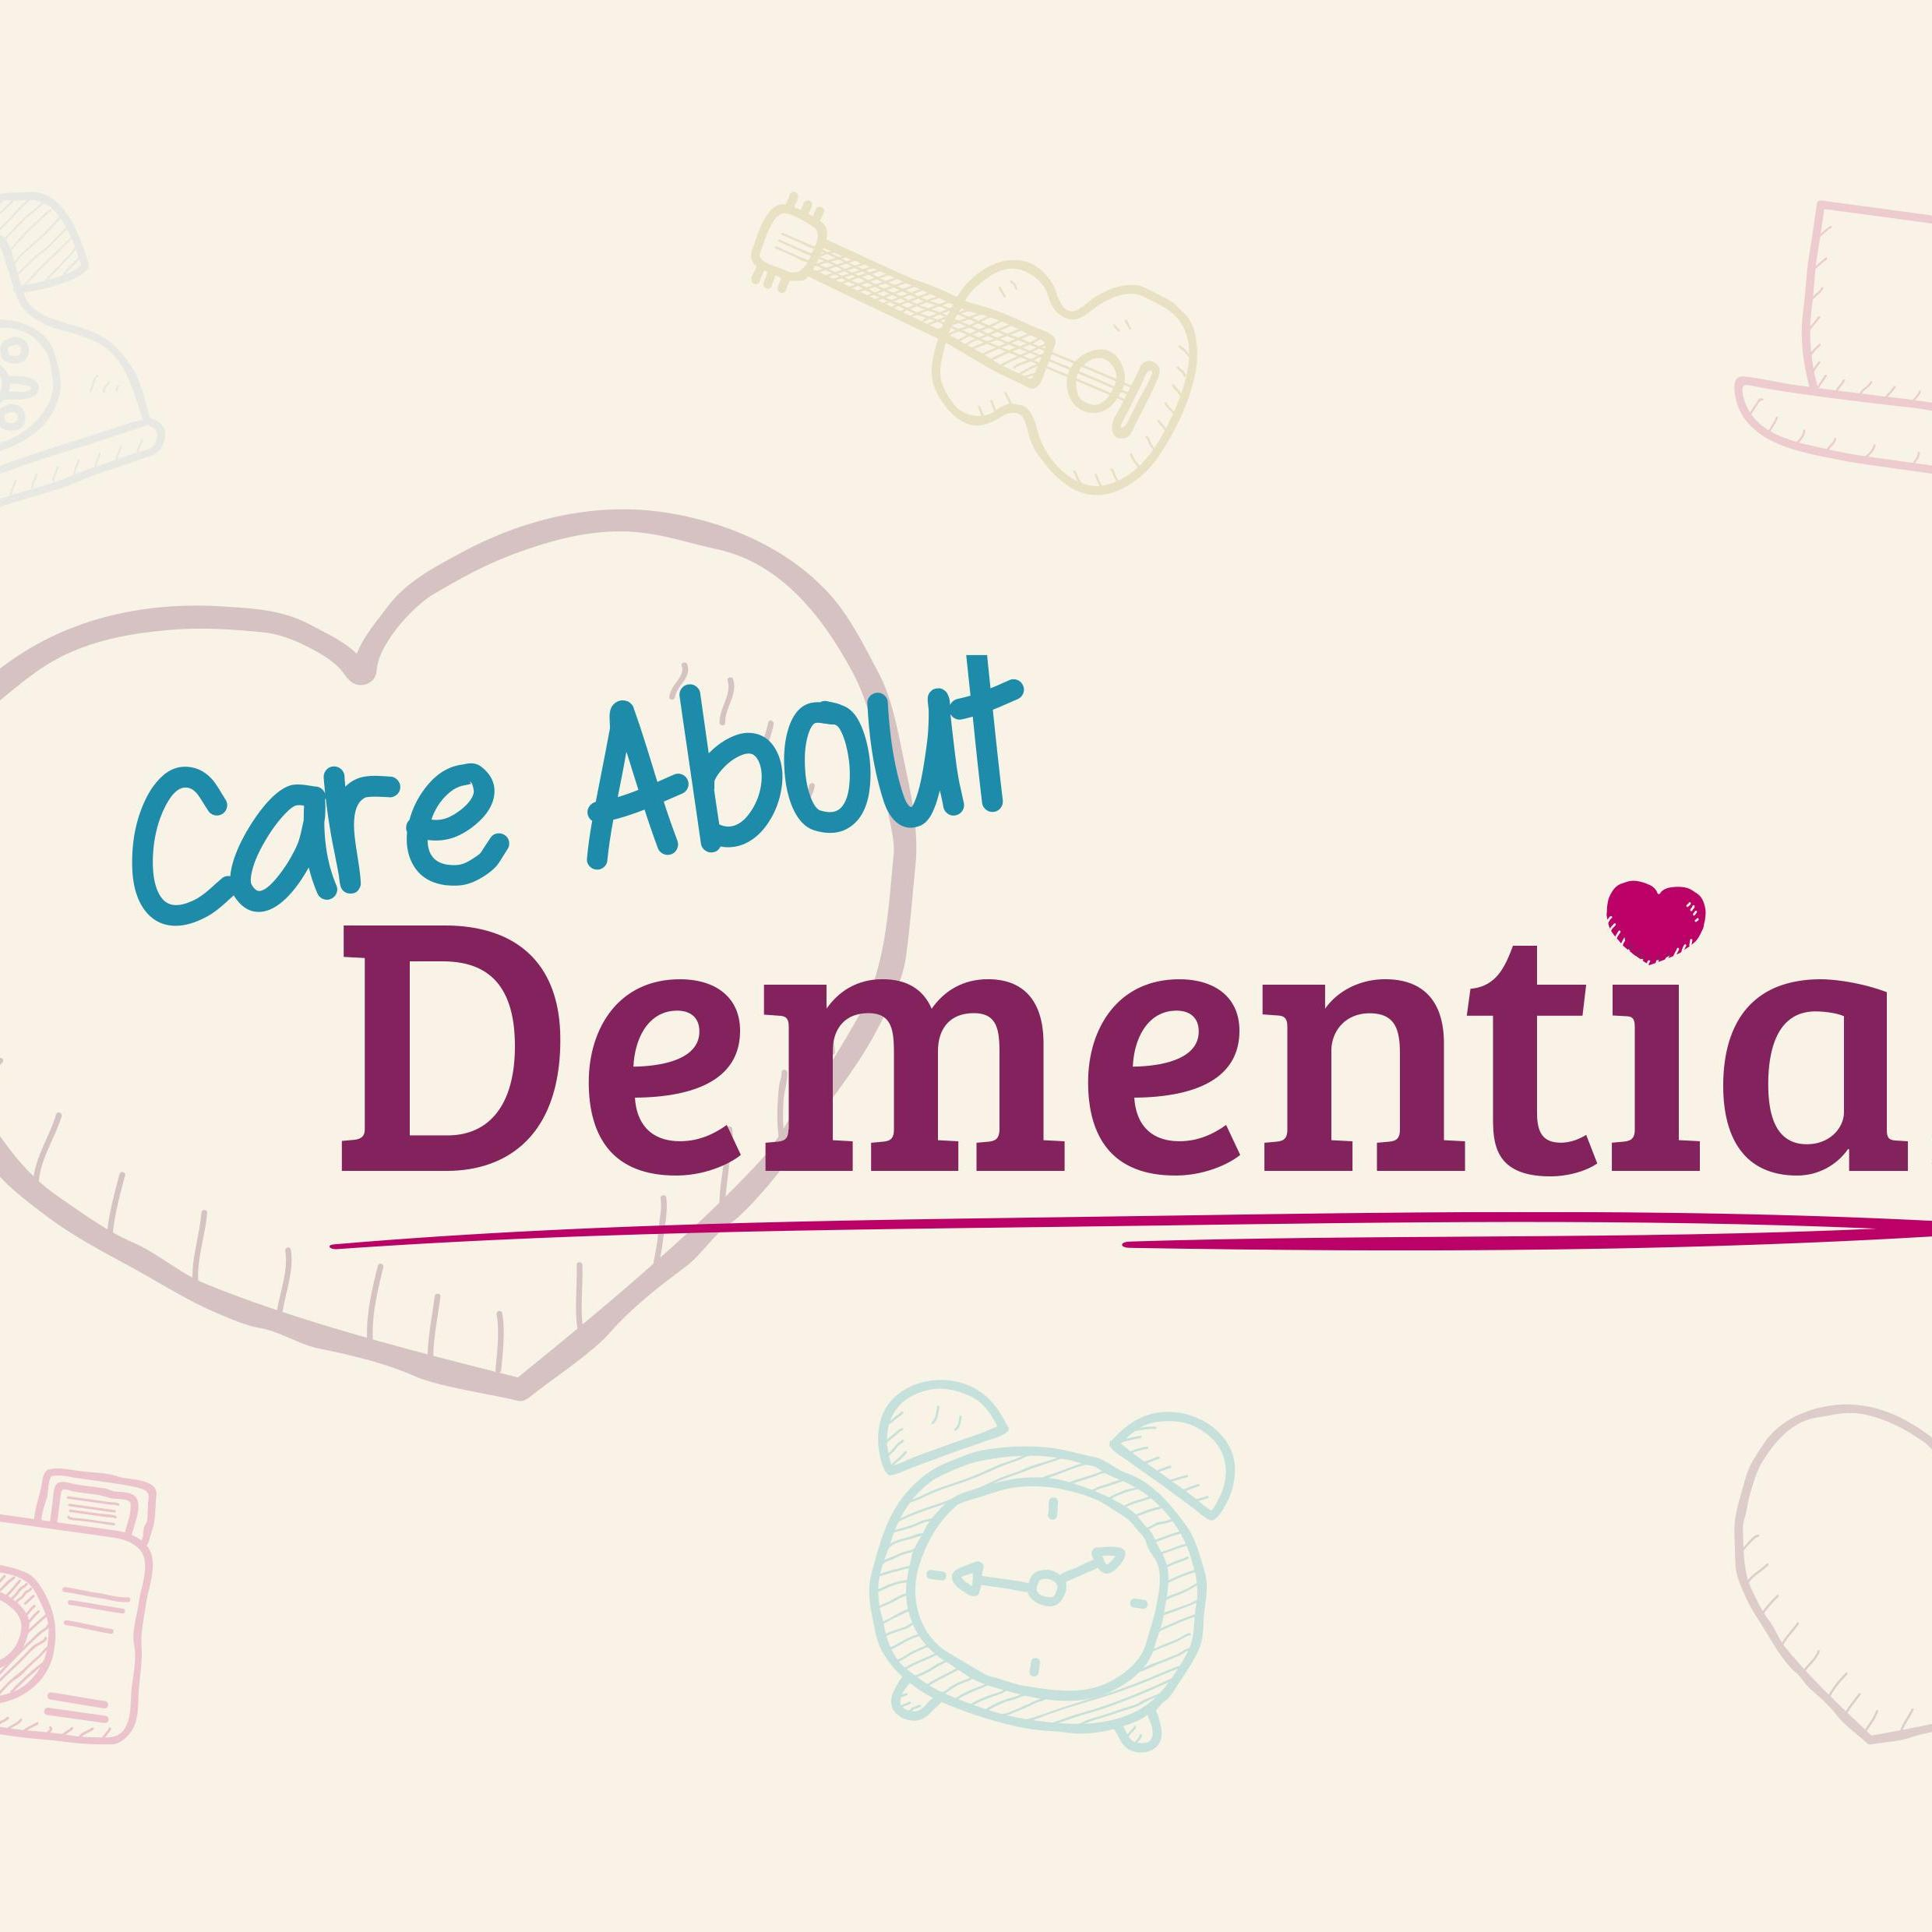 Care About Dementia Campaign for Dementia Action Week